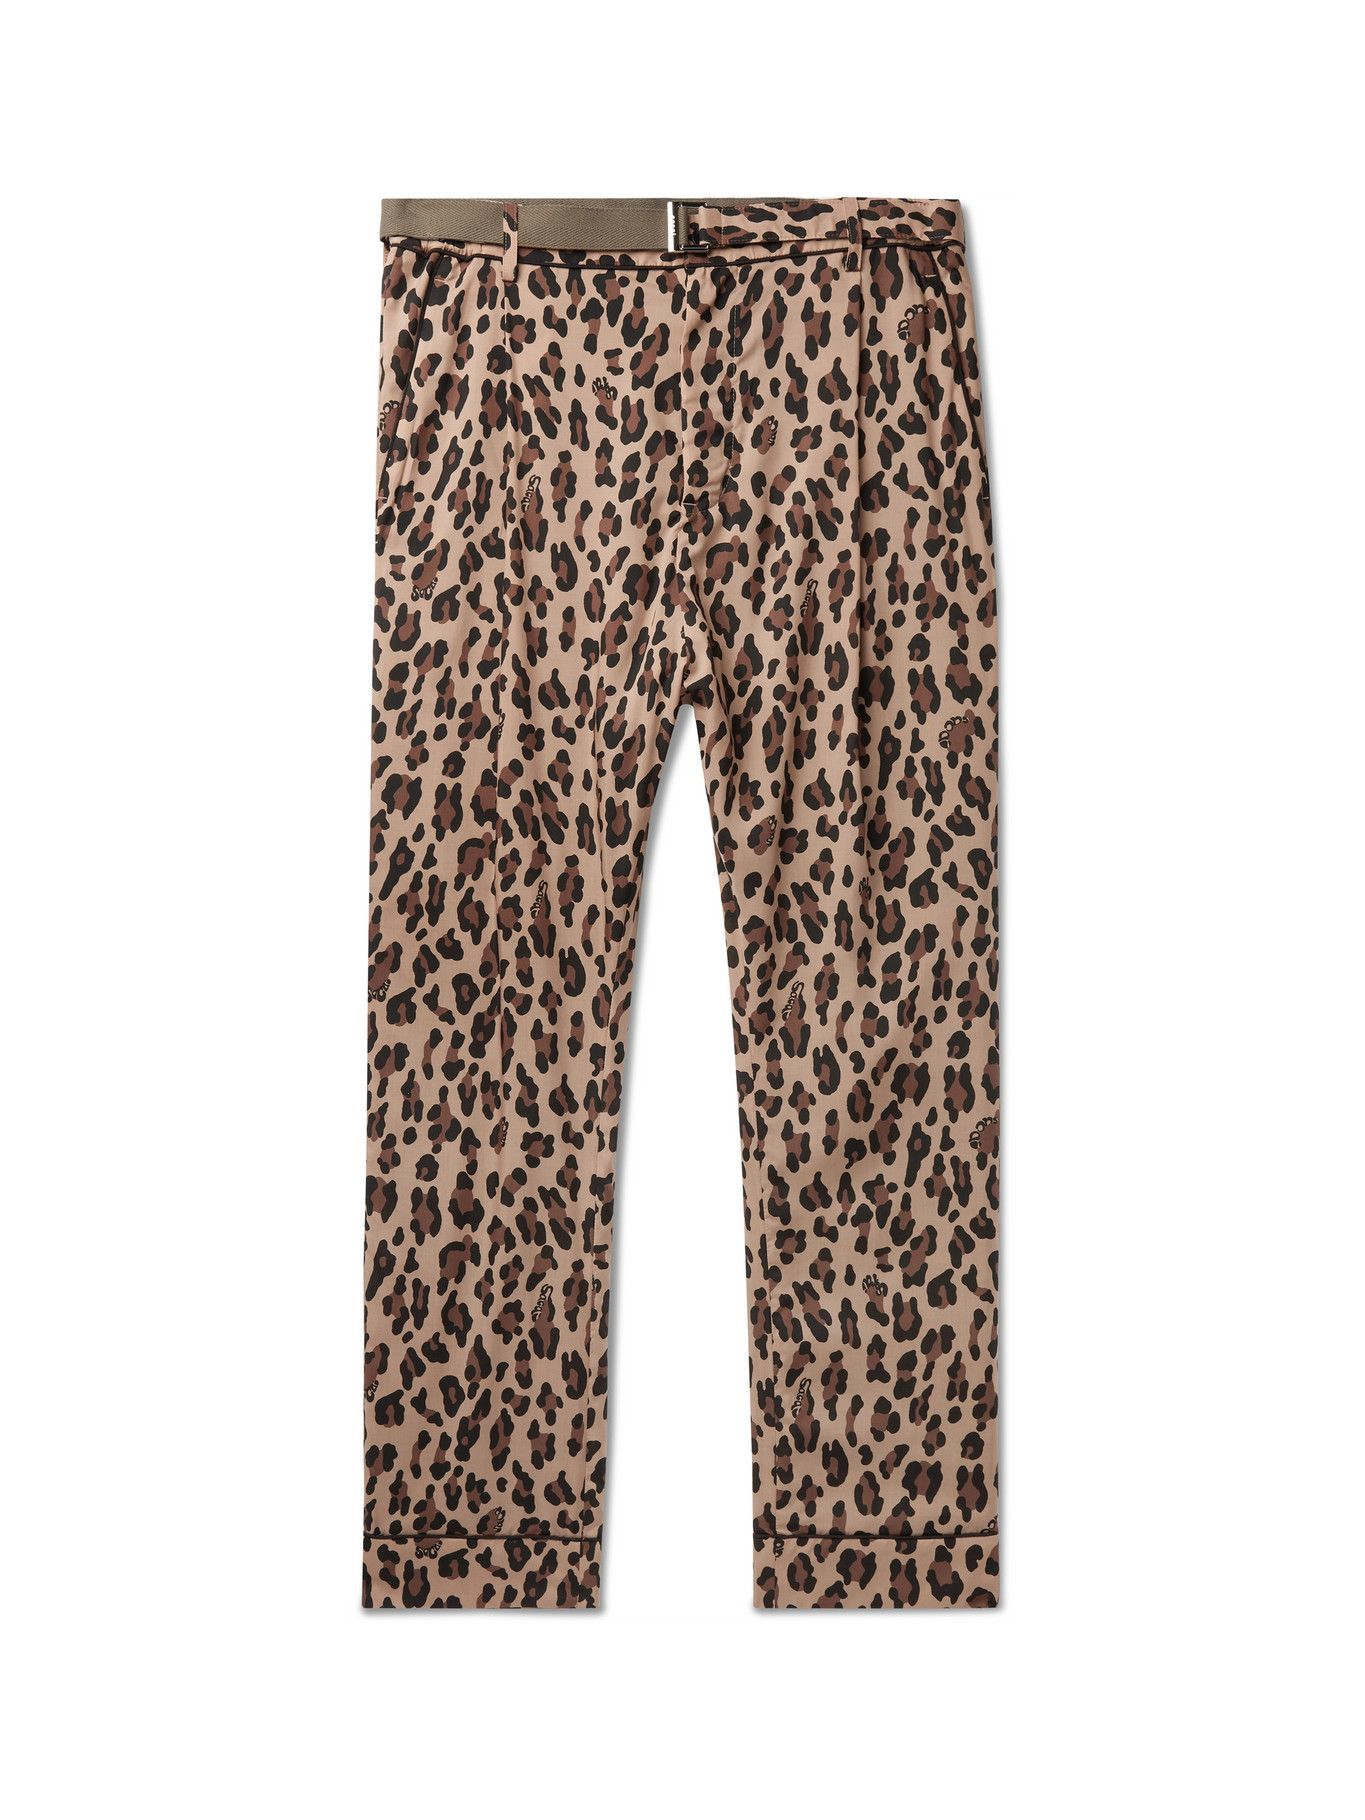 SACAI - Tapered Belted Leopard-Print Woven Trousers - Neutrals